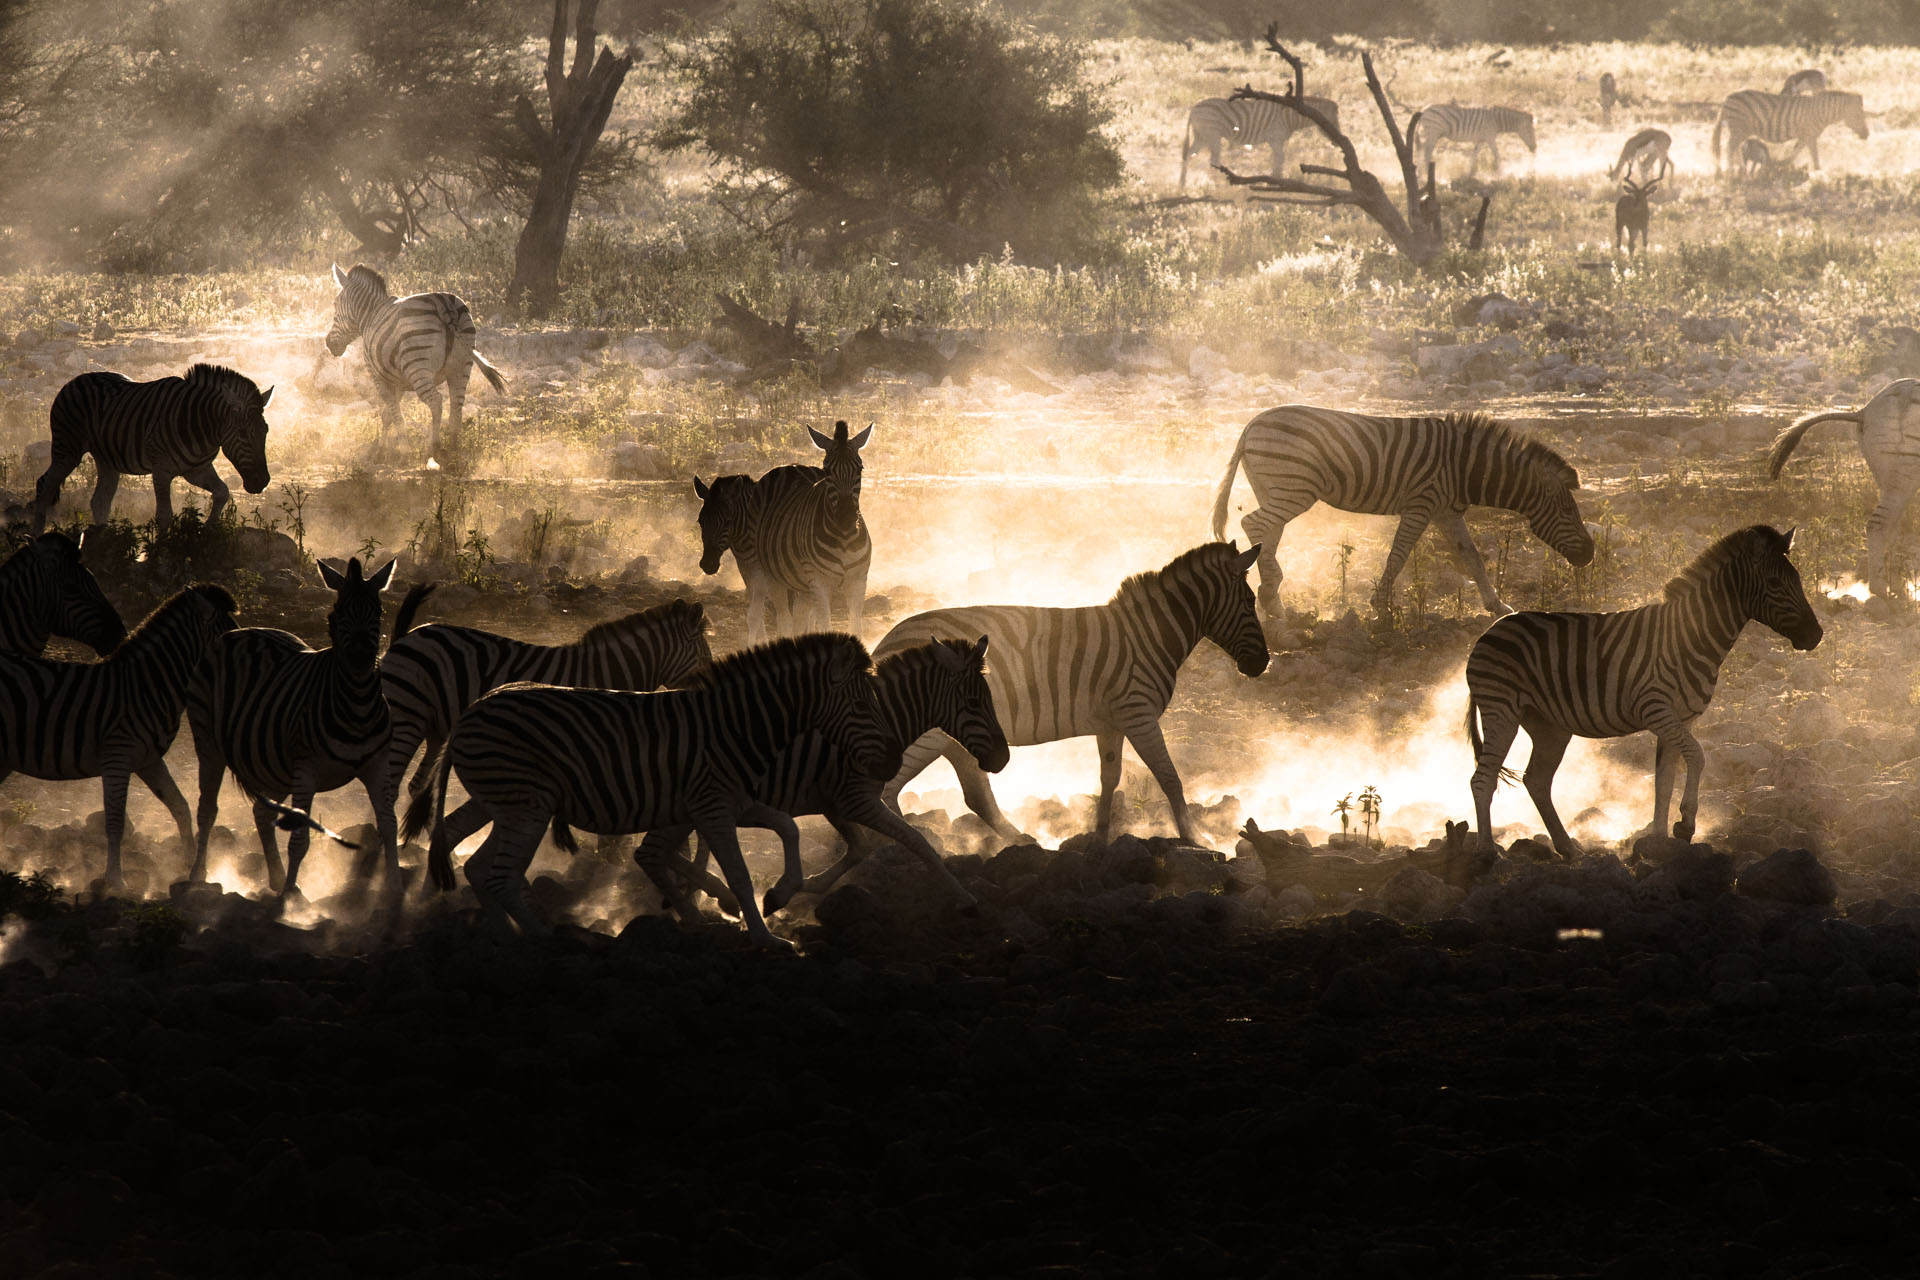 zebras silhouetted in dust storms